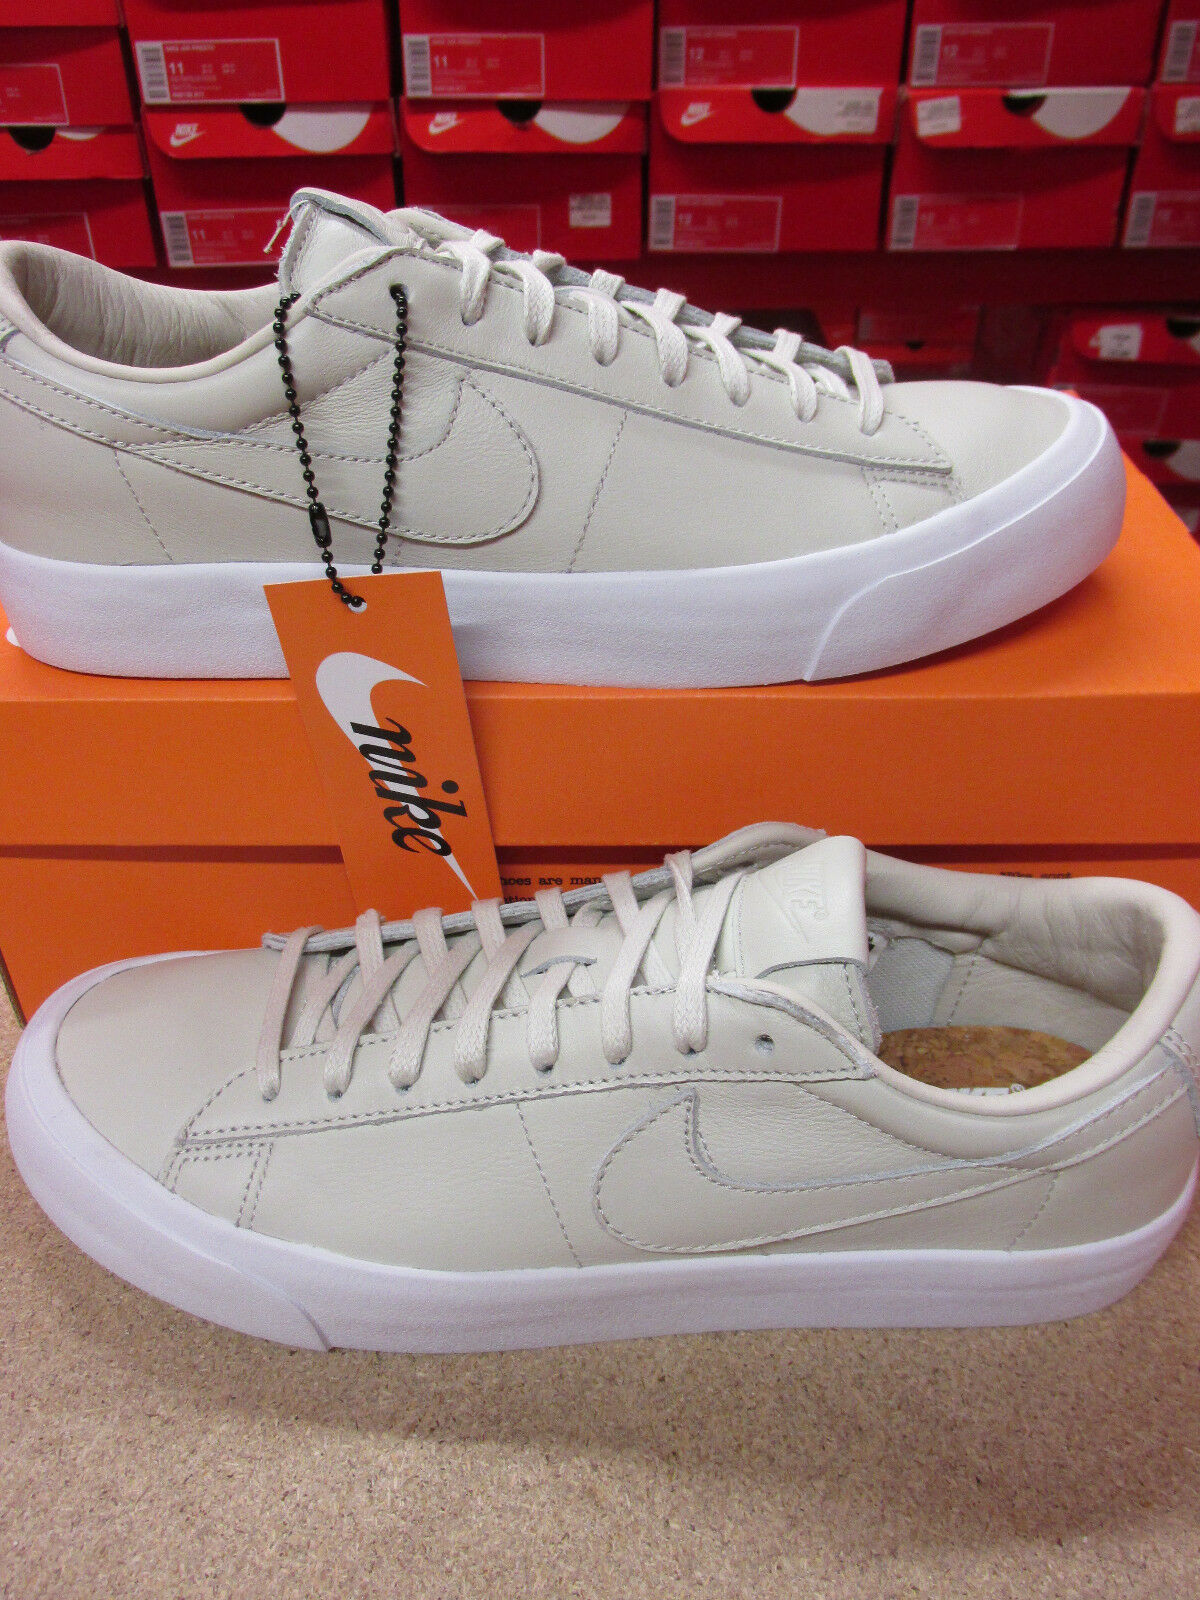 Nike Blazer Studio QS Mens Trainers 850478 001 Sneakers Shoes